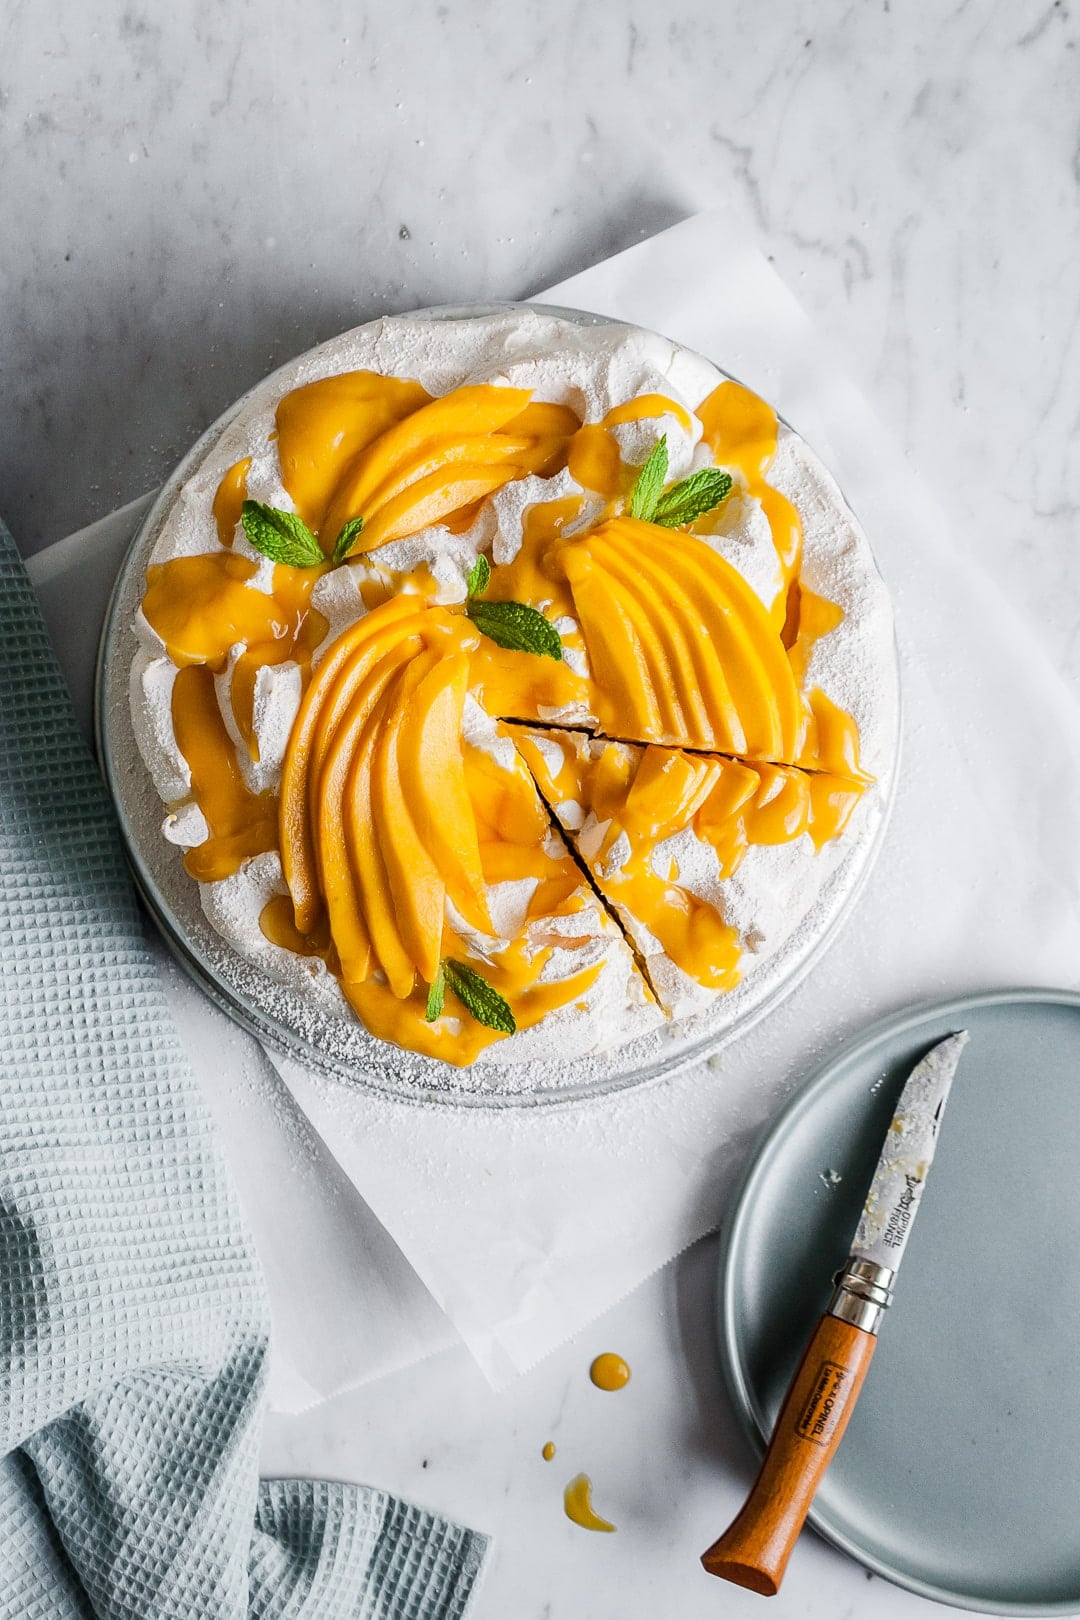 Meringue cake with mangoes on top with slice cut out of it and knife resting on plate nearby